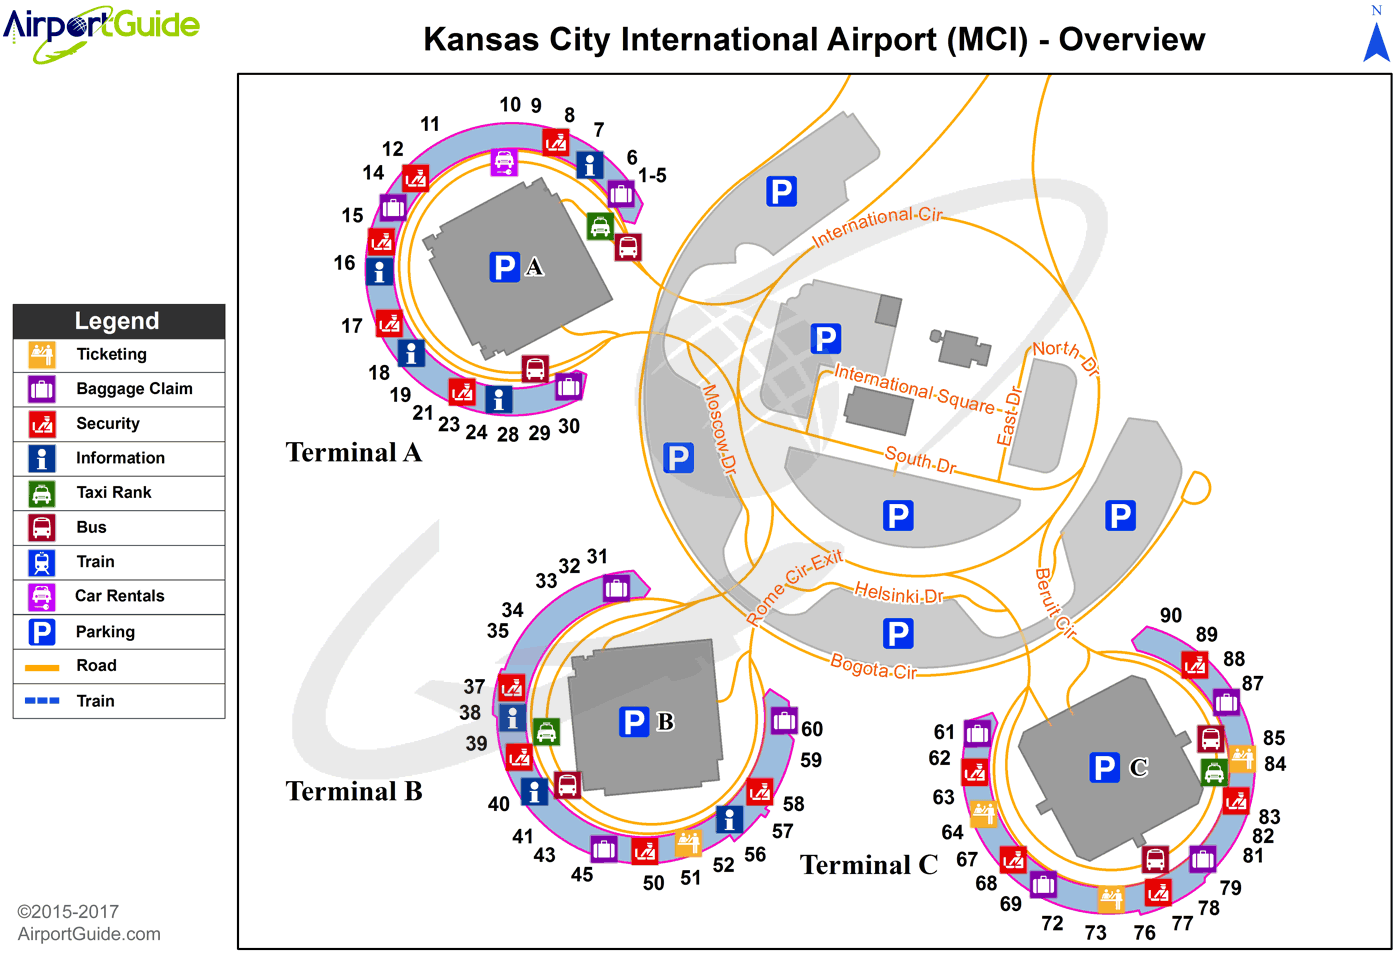 kansas city airport terminal map Kansas City Kansas City International Mci Airport Terminal Map kansas city airport terminal map